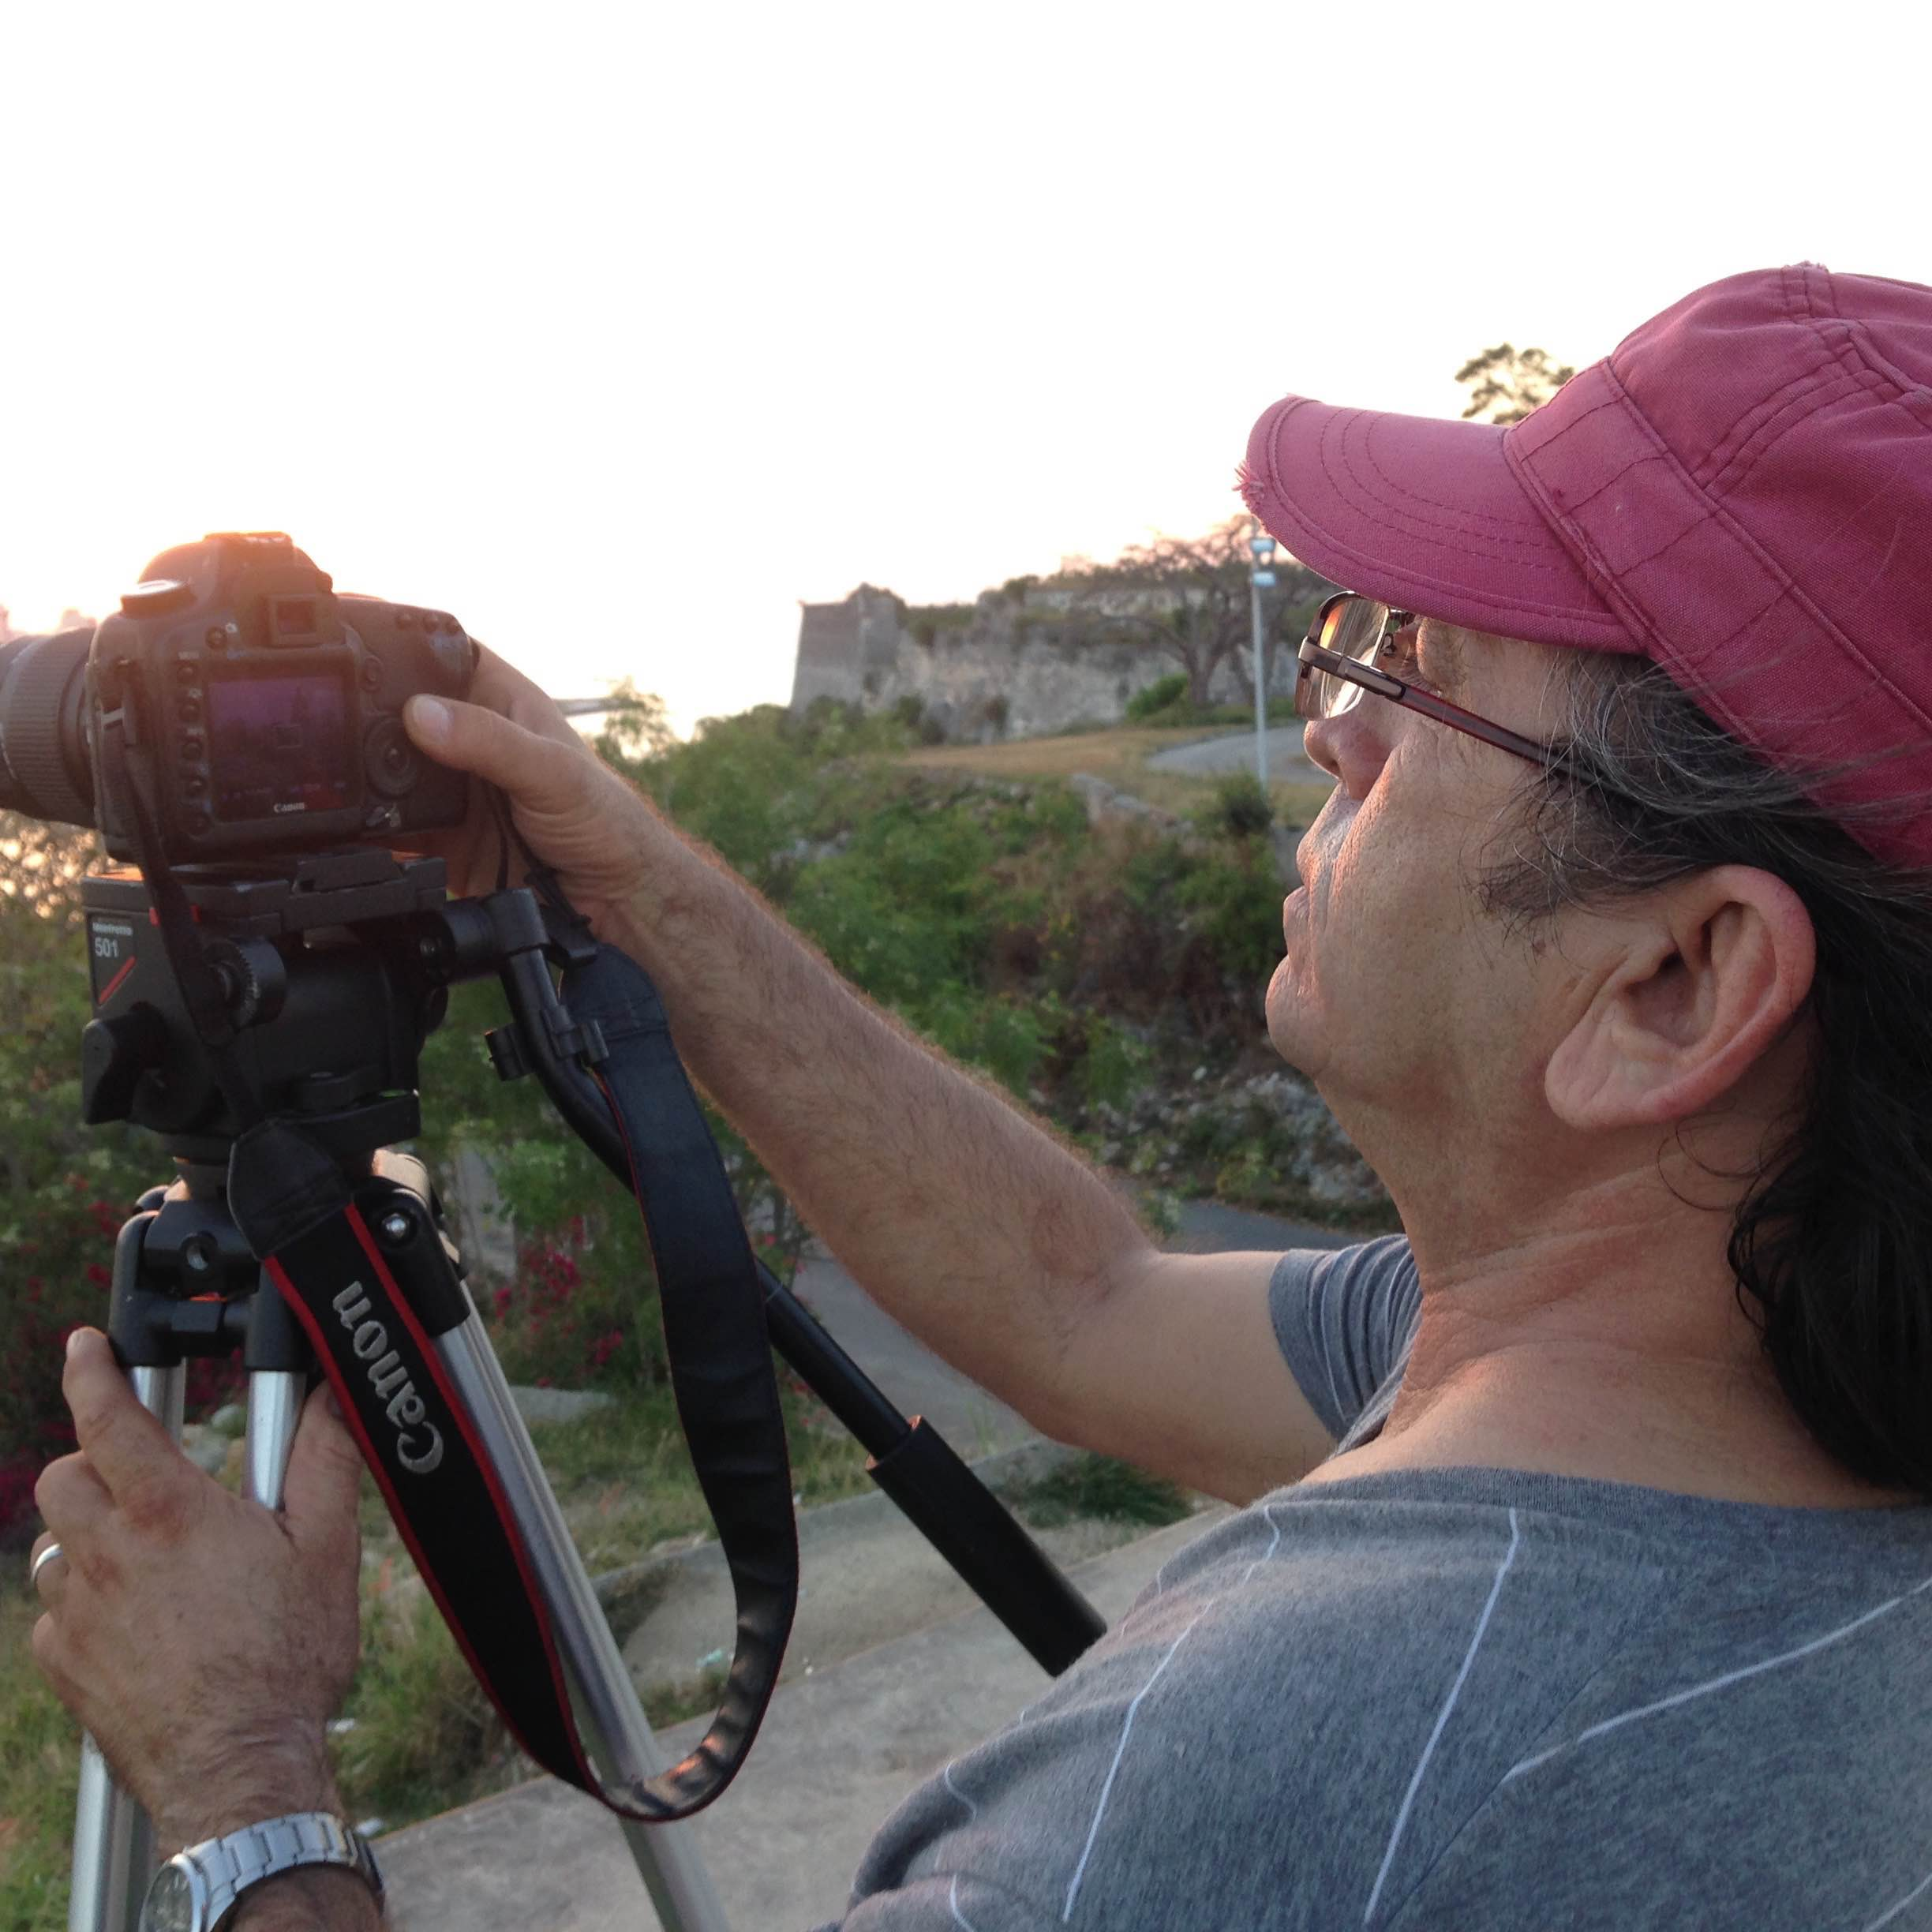 Rafael Solis at work documenting photographer Ivan Soca.